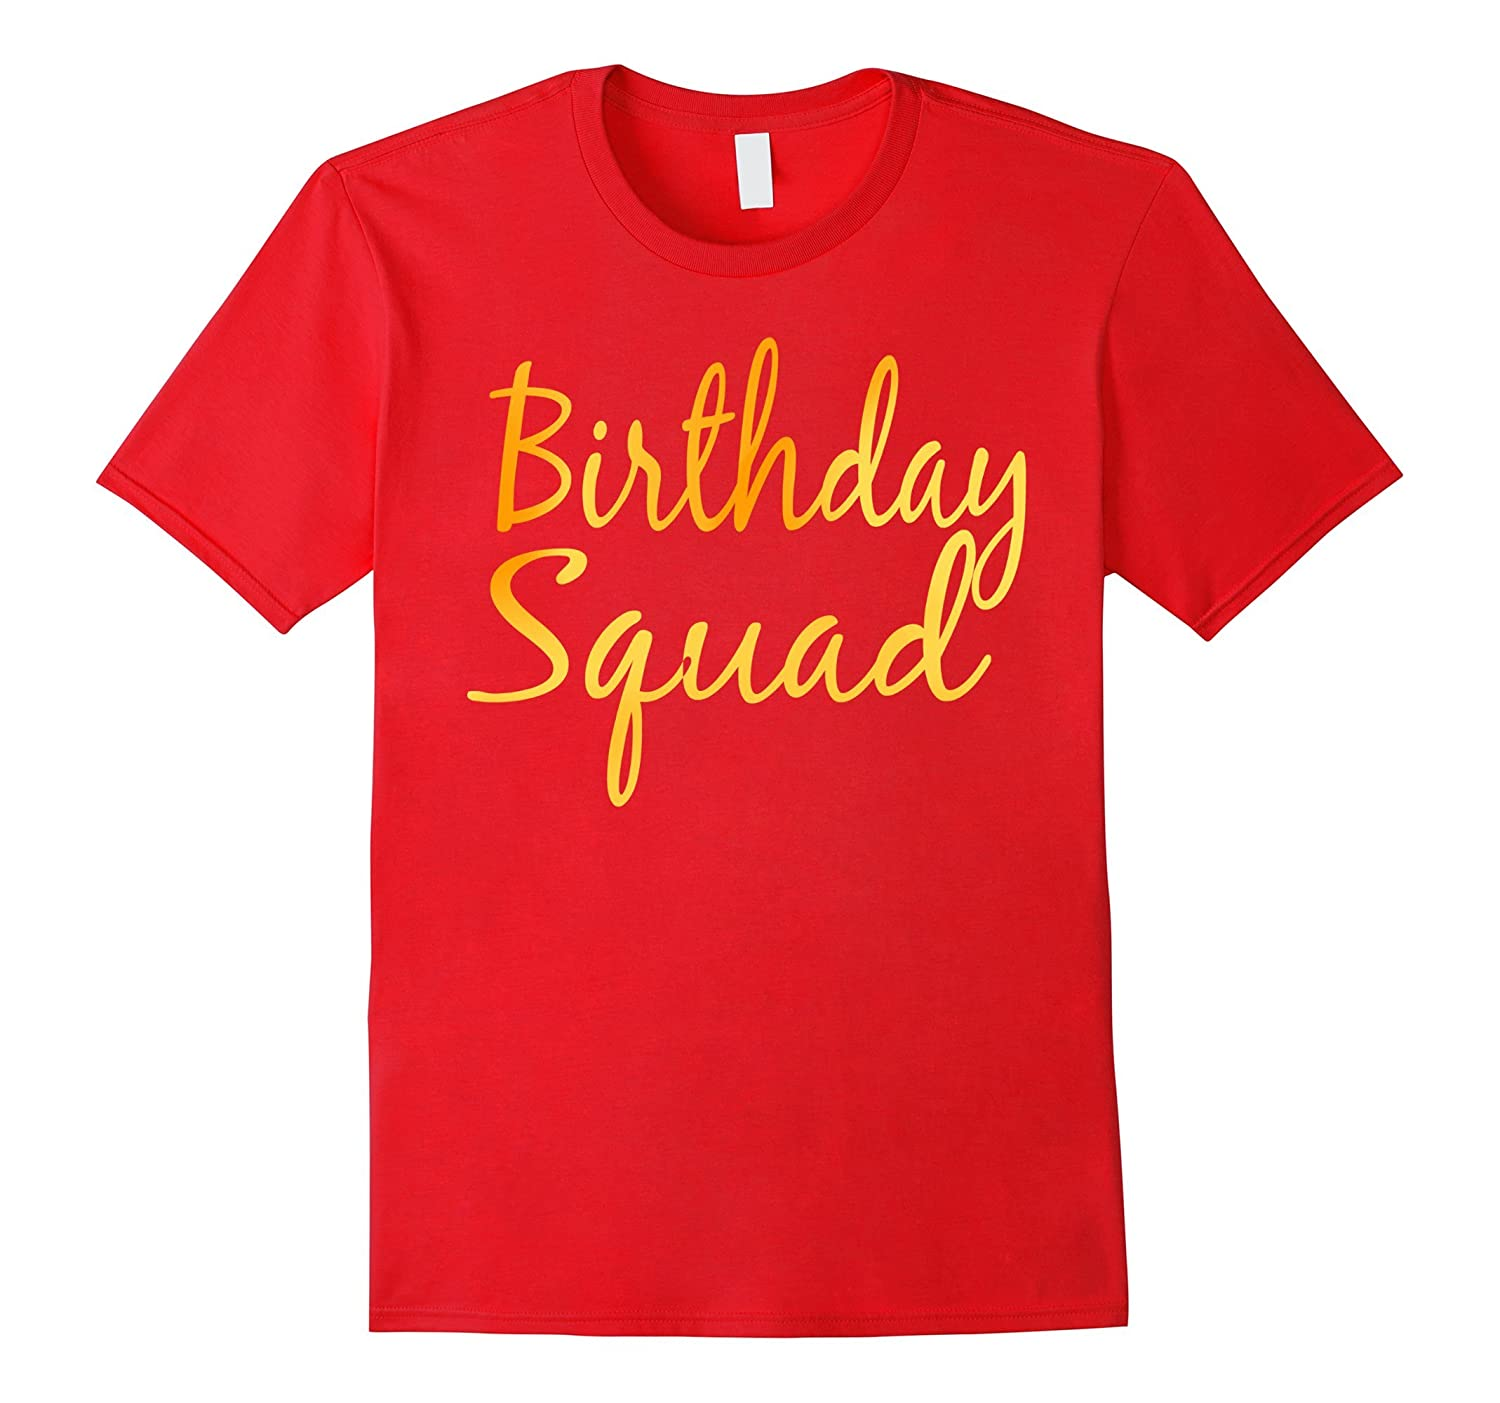 Birthday Squad T Shirt Party Black-Awarplus